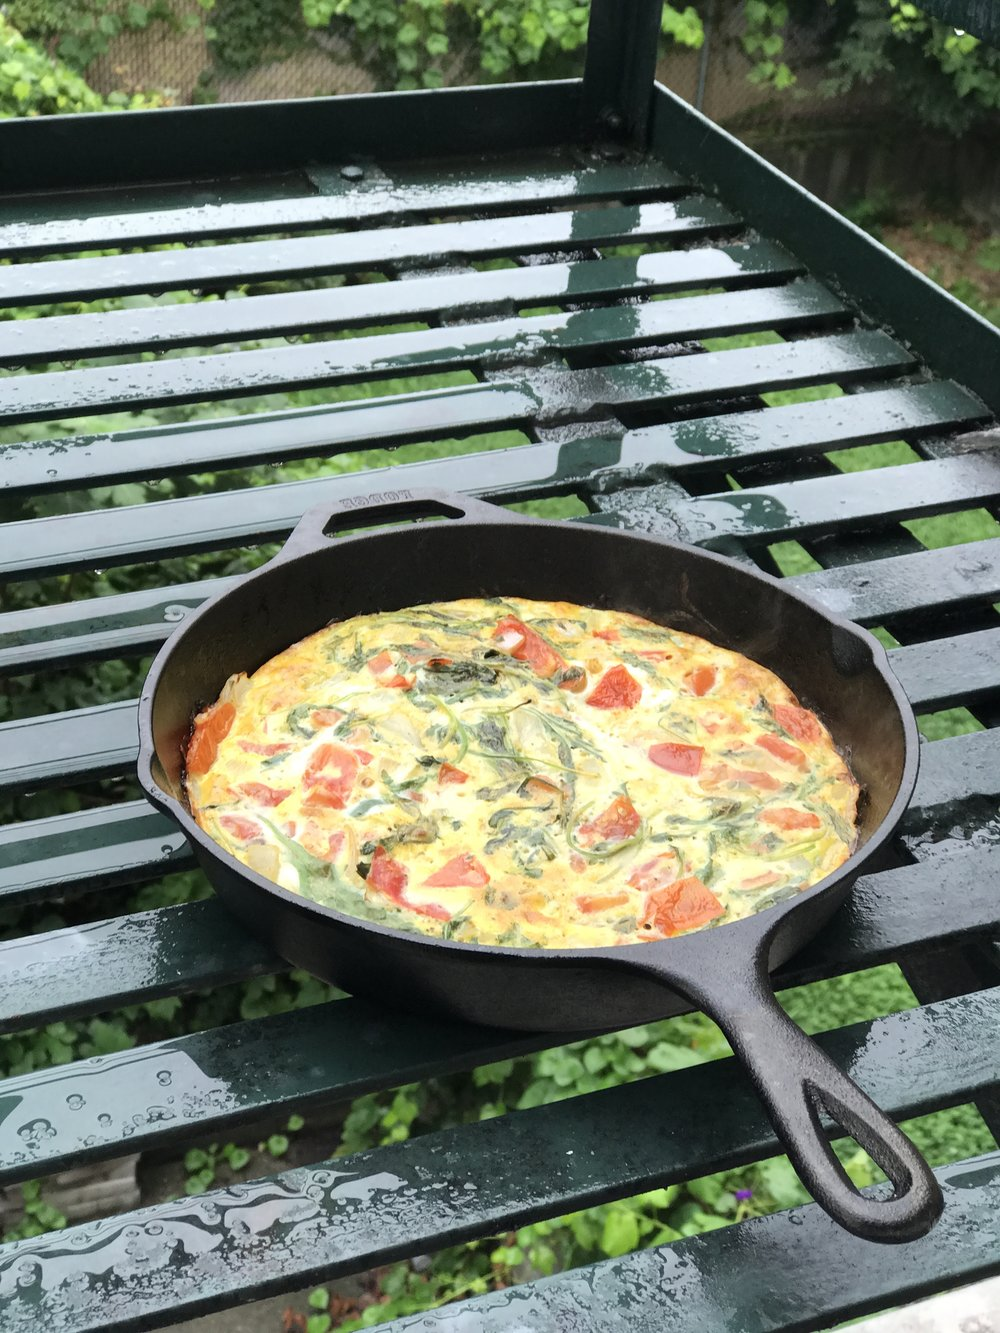 My very first Whole30 meal. This frittata was DEELISH